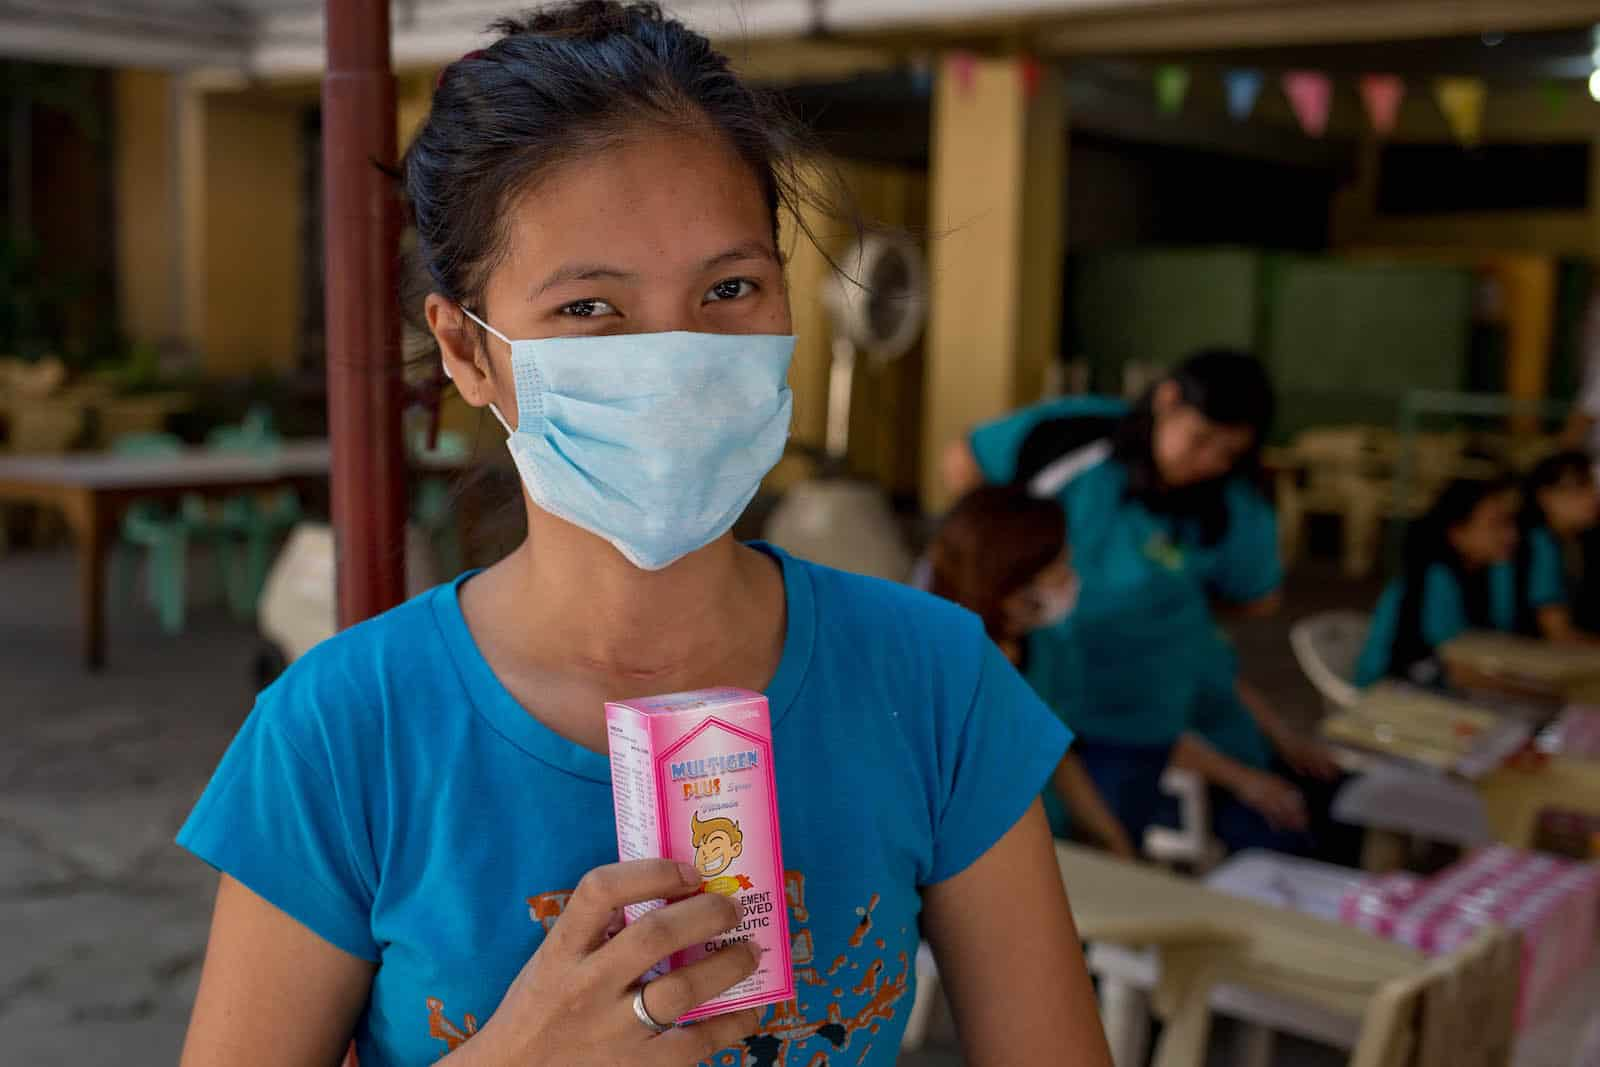 A young woman wearing a face mask holds a box of vitamins